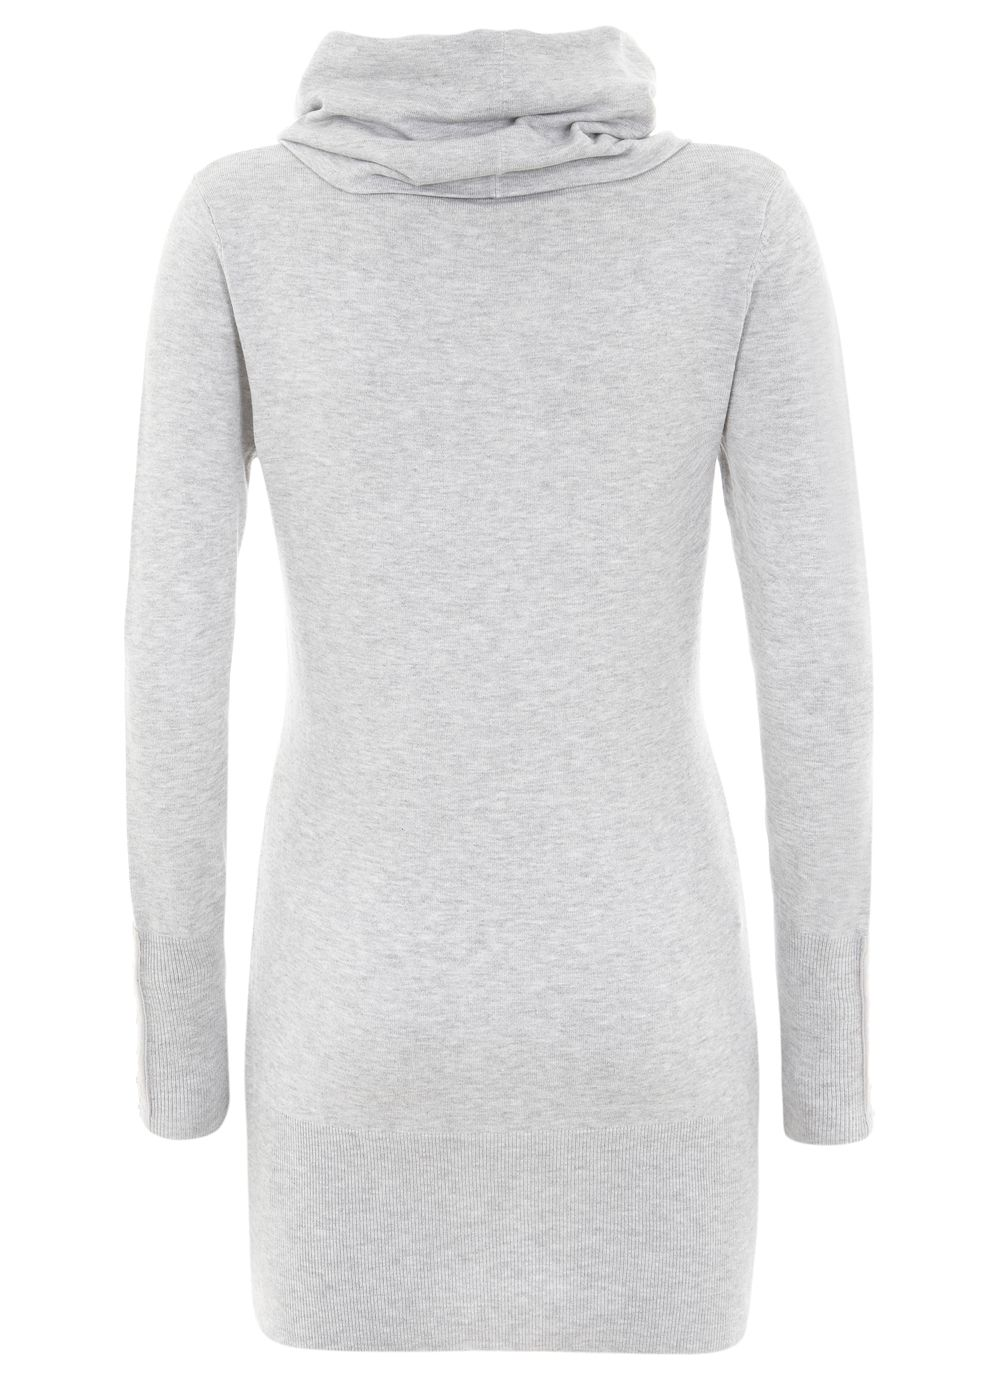 Silver grey cowl neck tunic